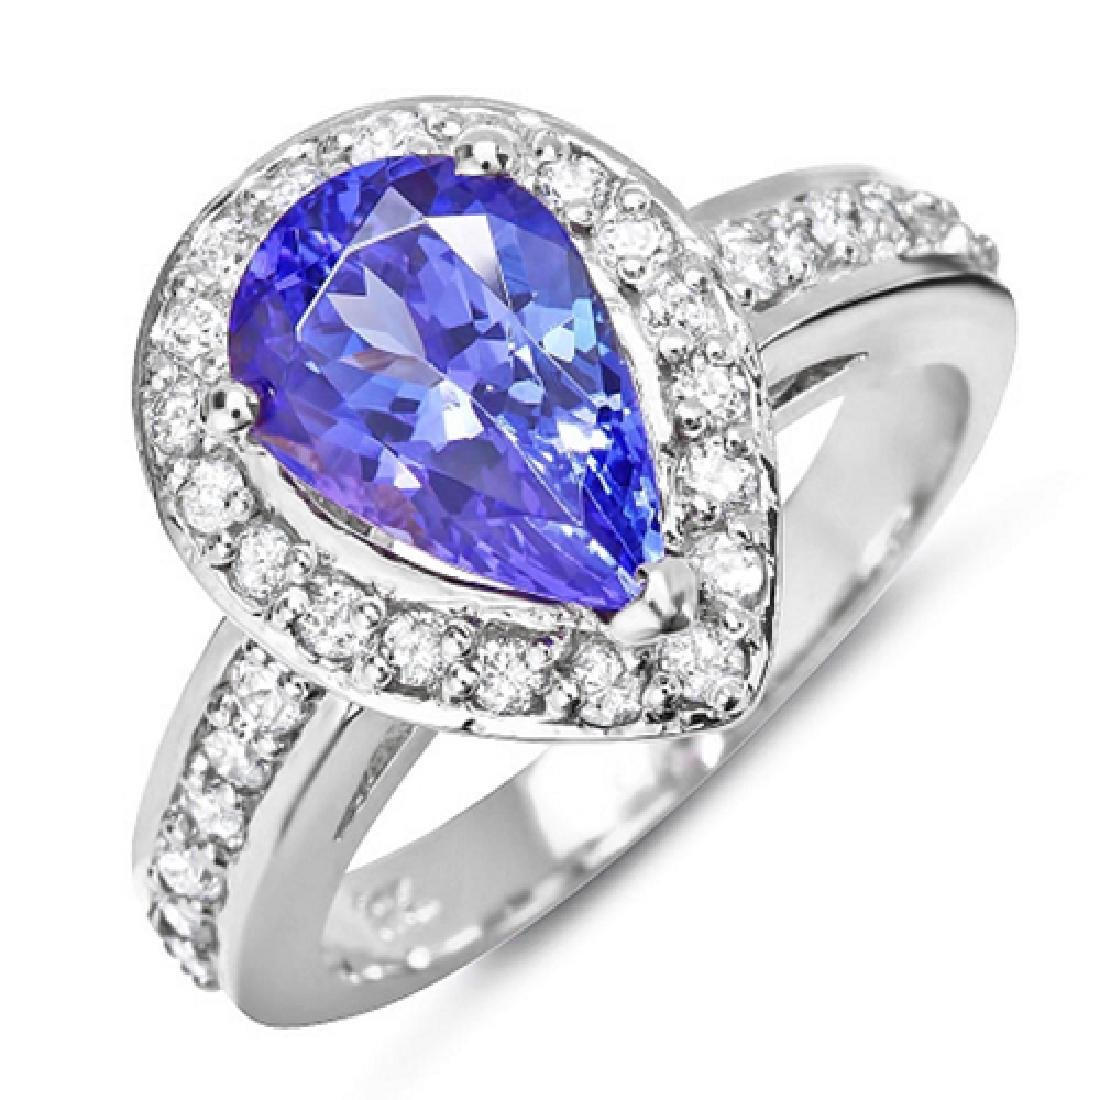 3.00 Carat Natural Tanzanite 18K Solid White Gold